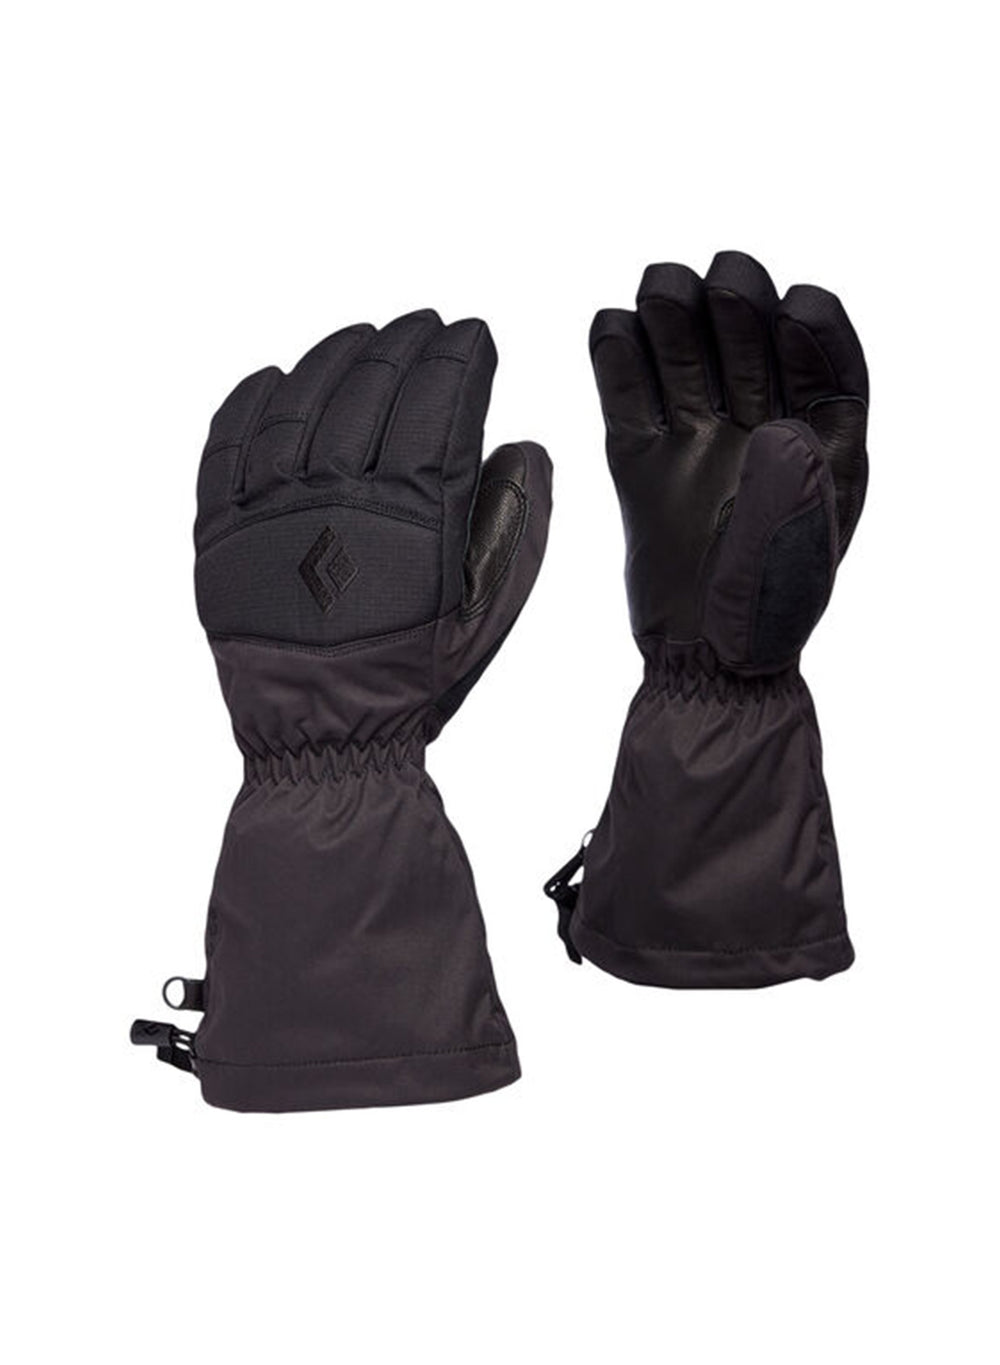 Black Diamond Women's Recon Gloves